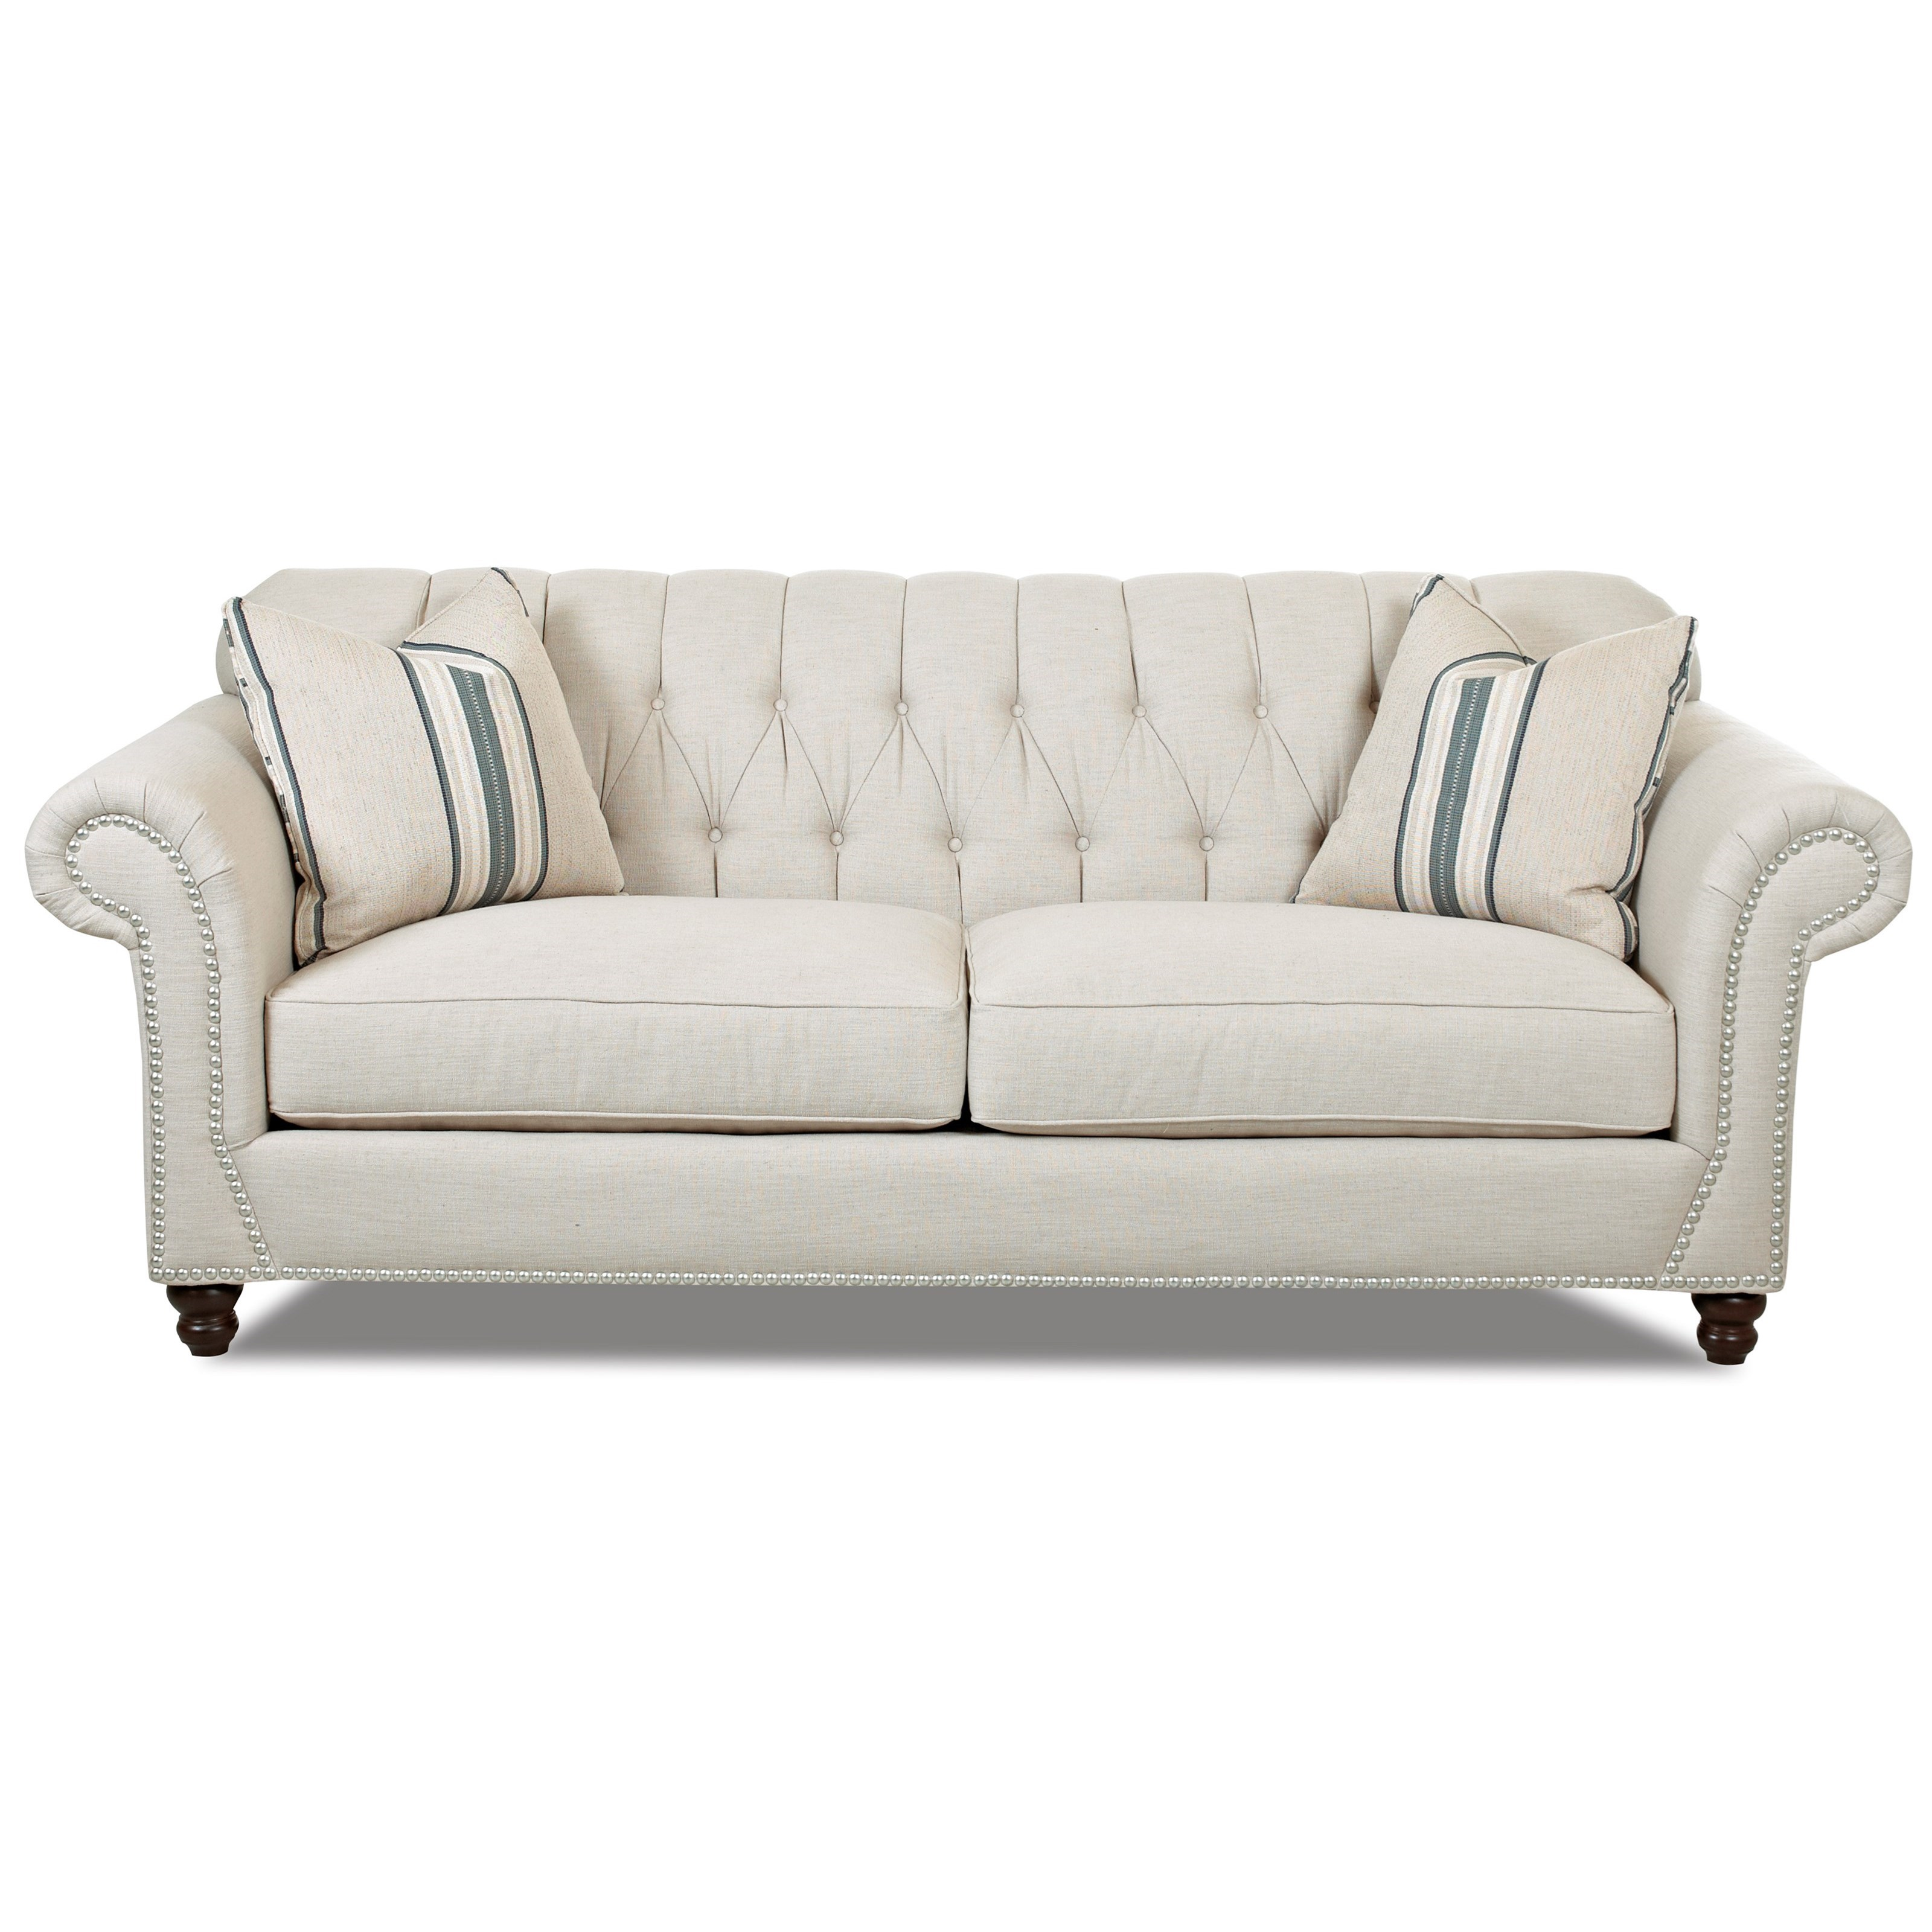 sofa store towson md set designs for living room in kenya traditional with button tufted back, rolled arms and ...